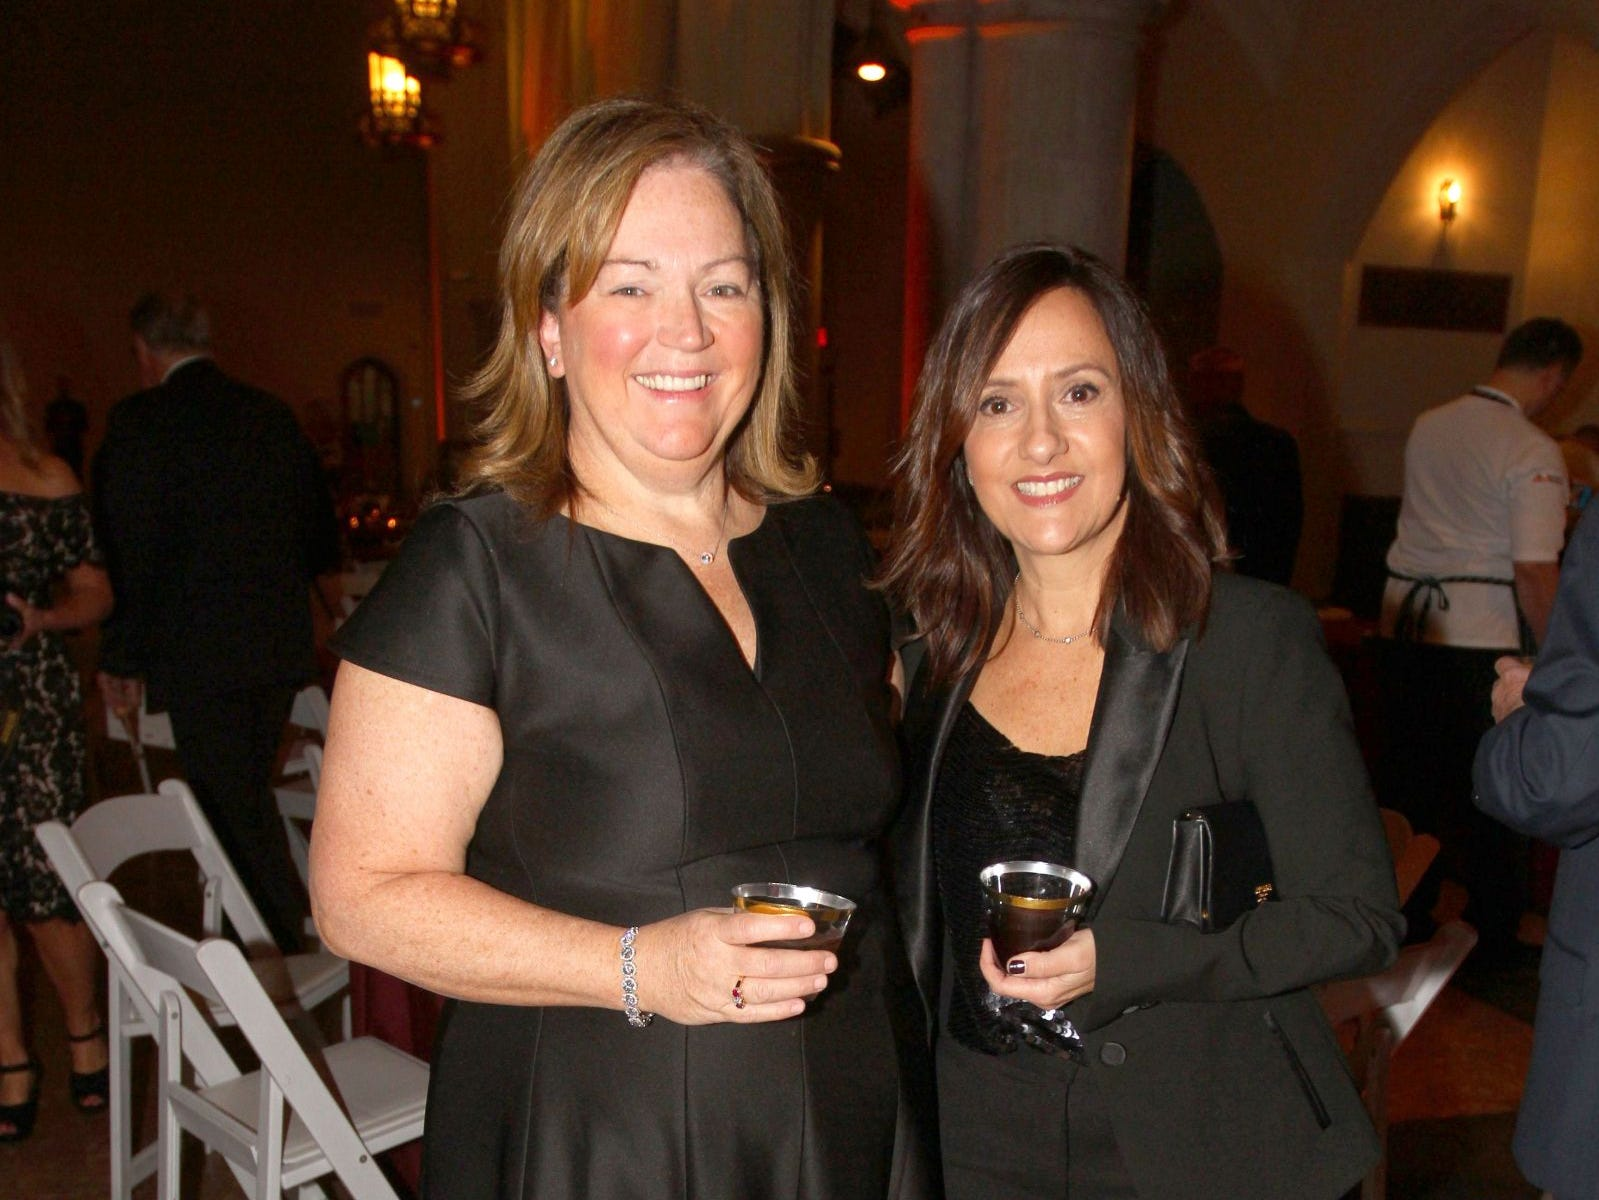 MaryBeth McGuire; Jordana Parker. Wyckoff Family YMCA hosted its 75th anniversary gala to celebrate its benefactors, held at the Rio Vista seminary in Mahwah. 11/16/2018